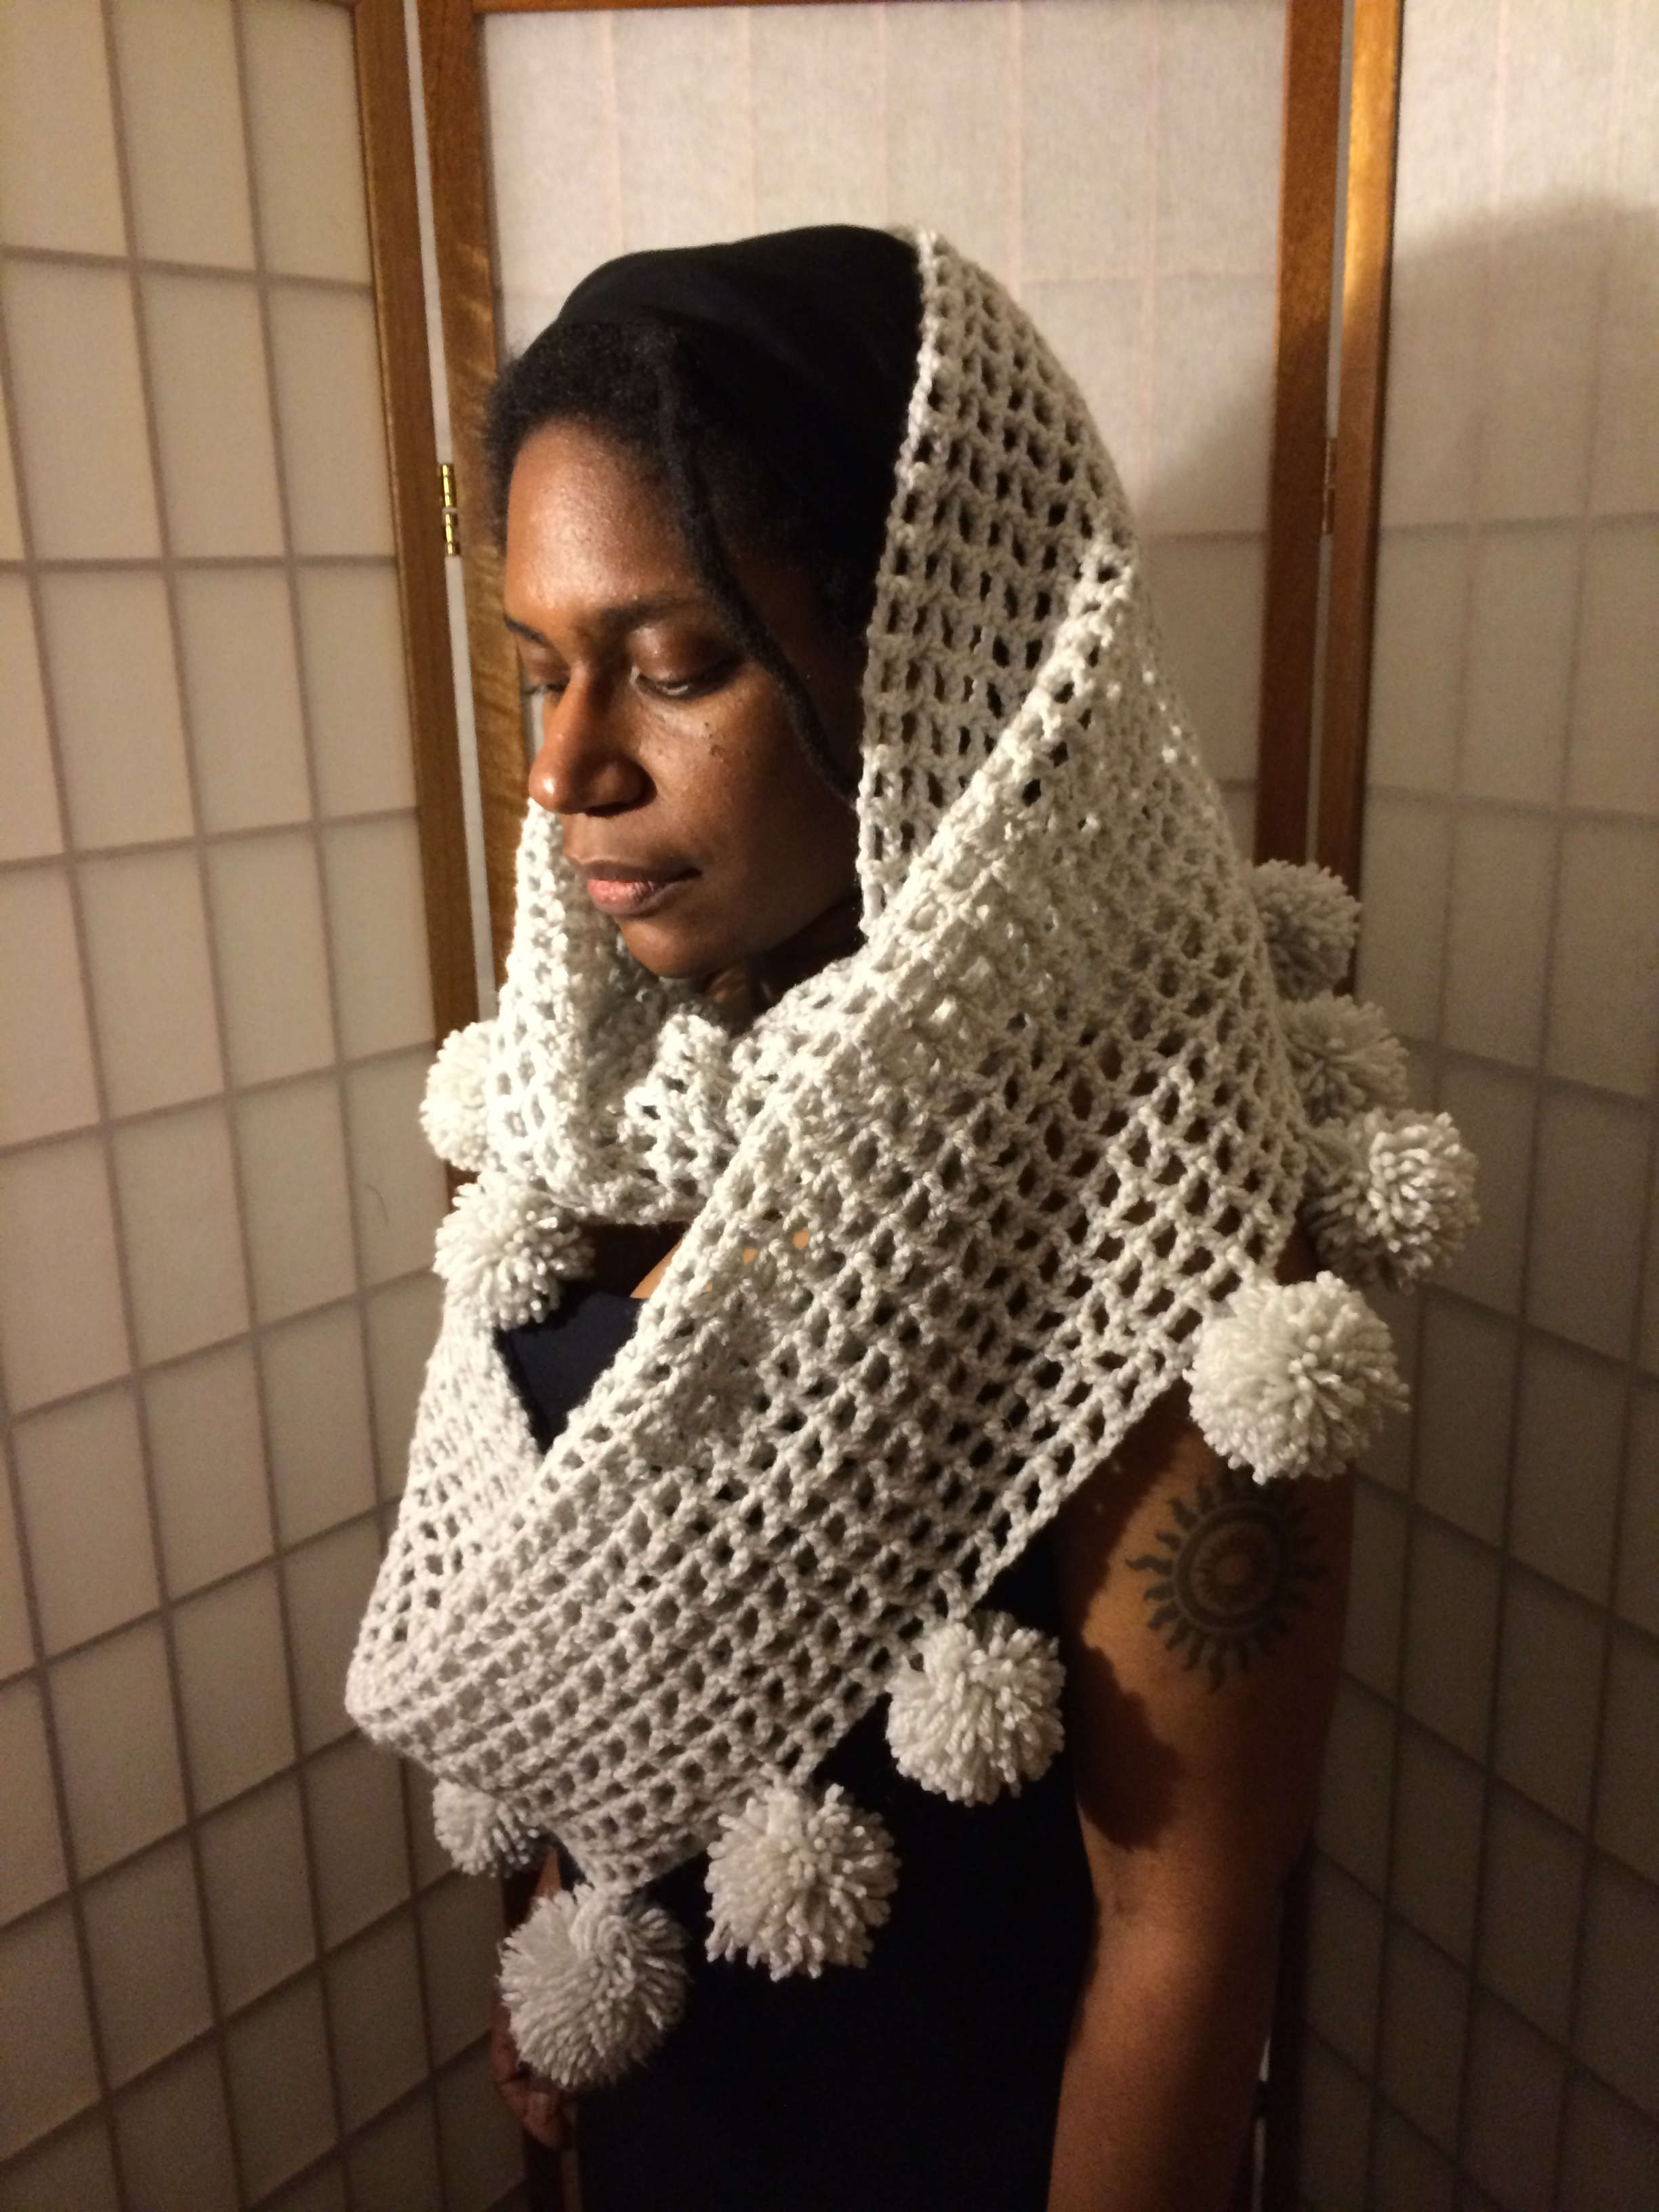 The 'easy challenge' Chain Mail Snood